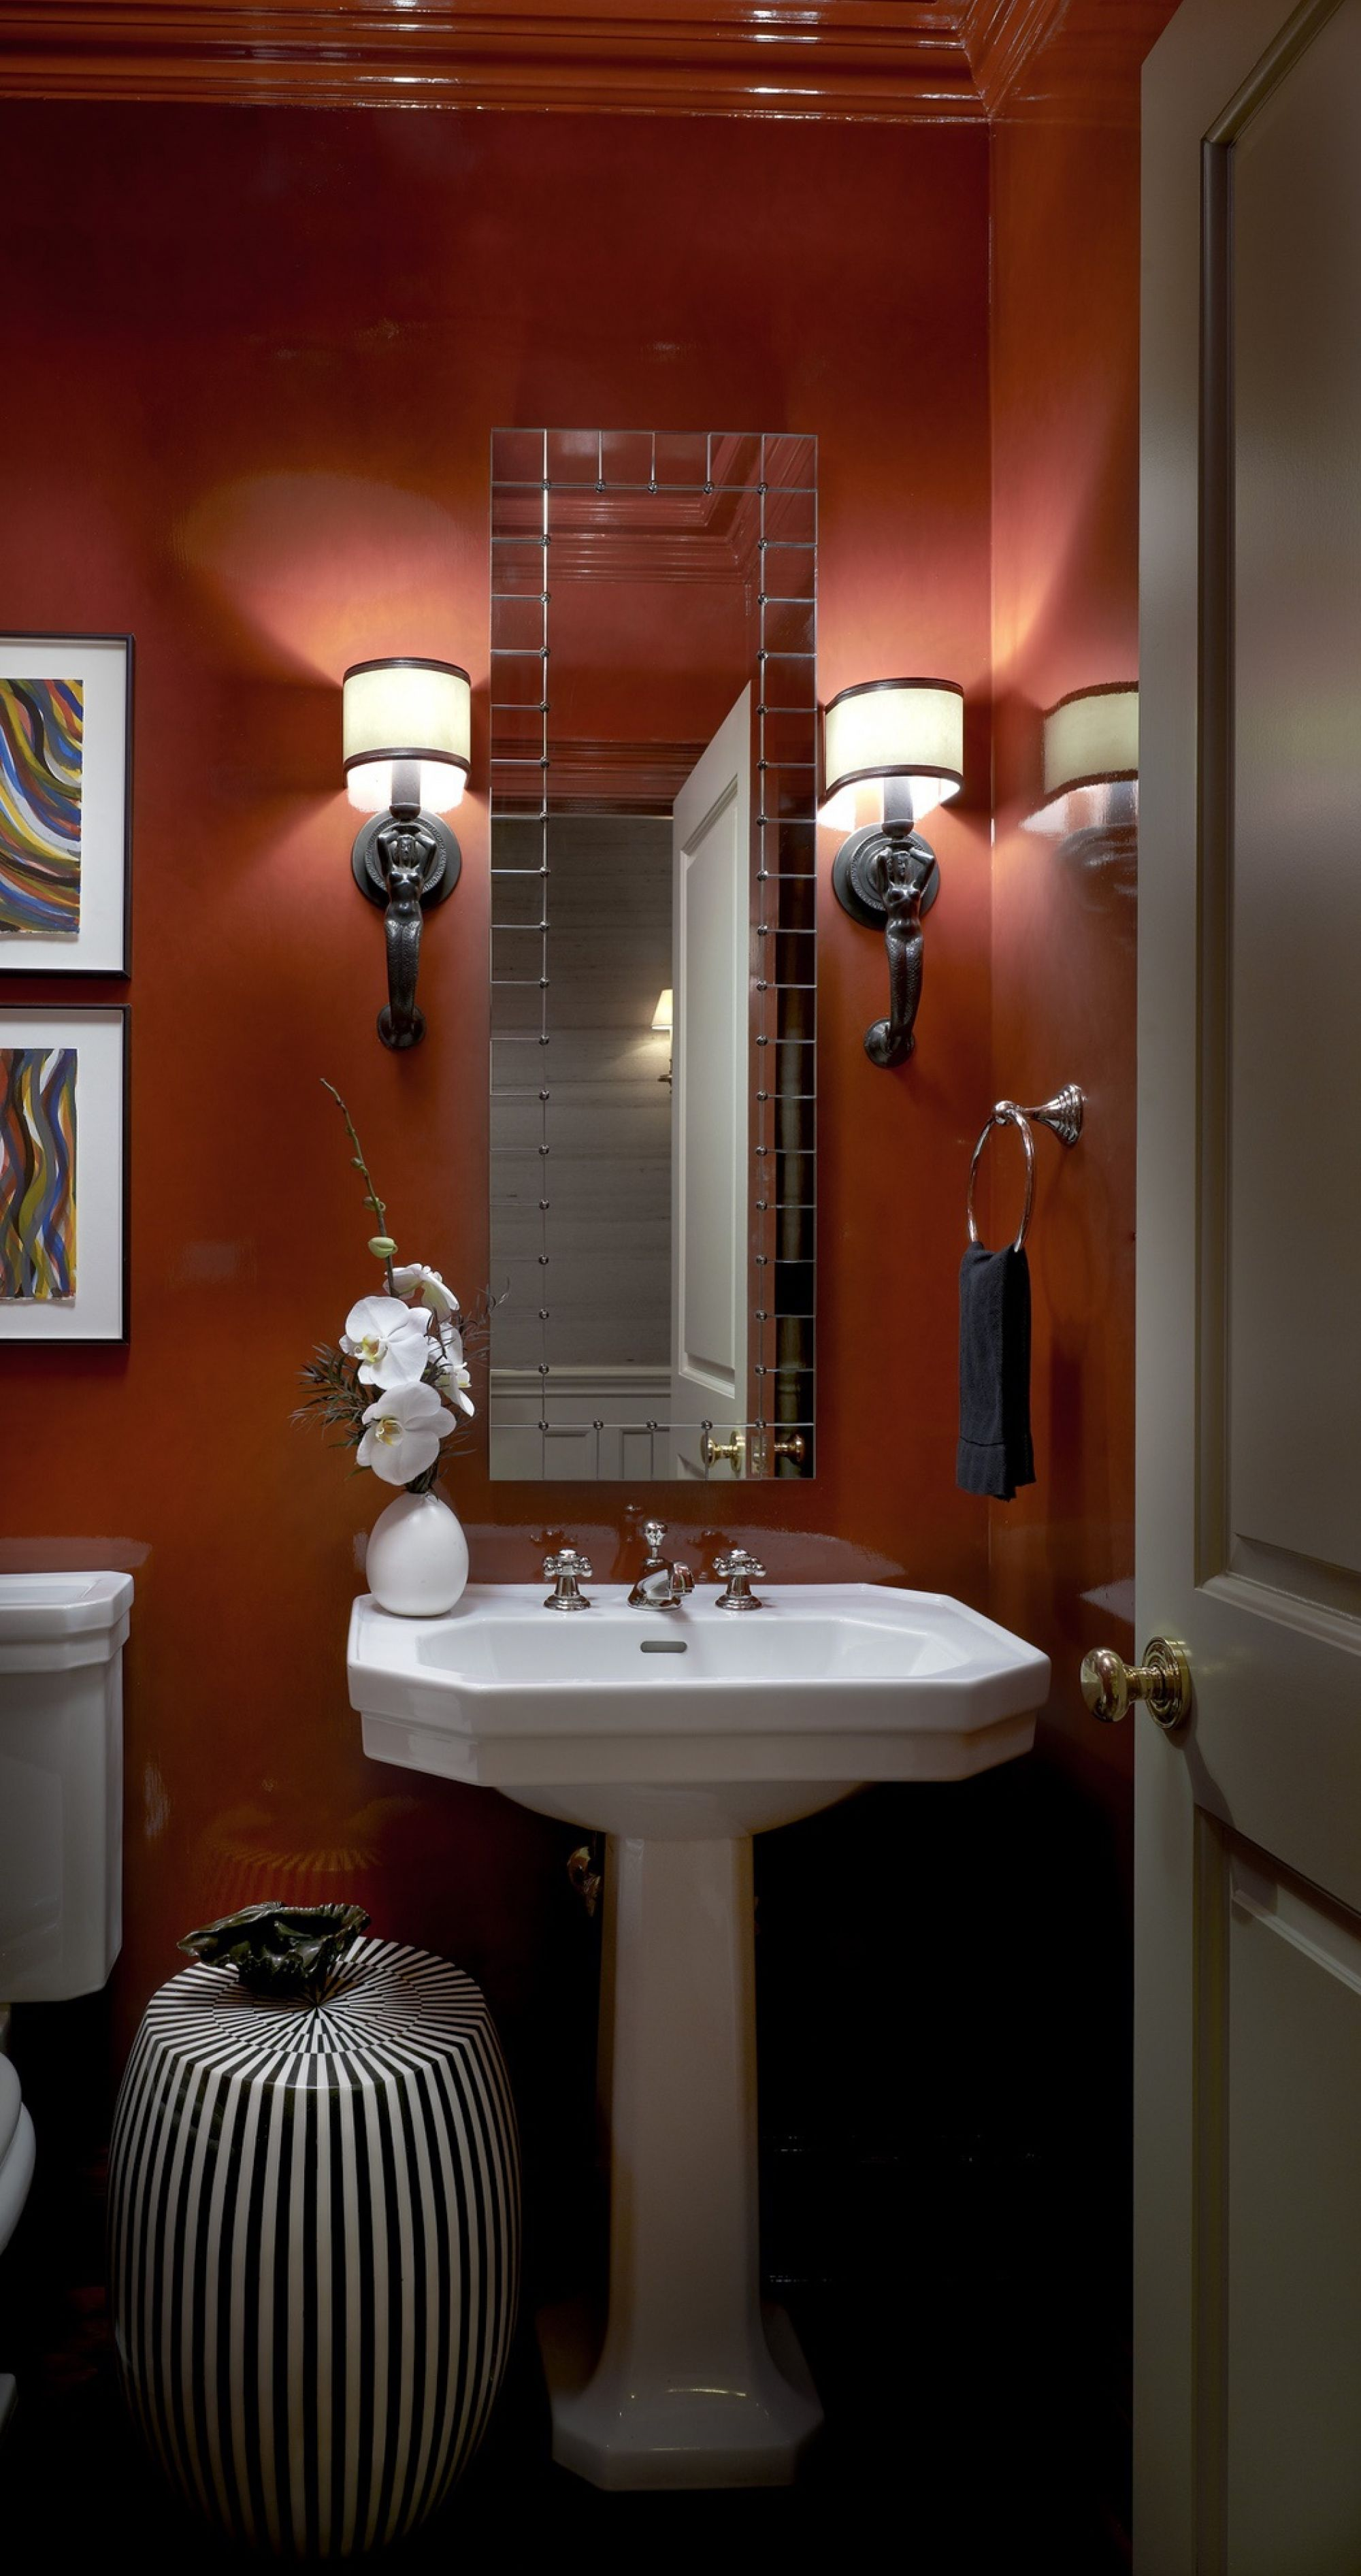 We used C2 Luxe Paint's Audacious in gloss to amplify the glamor and dimensions of this tiny powder room in a vintage building. Project: Astor Street Residence